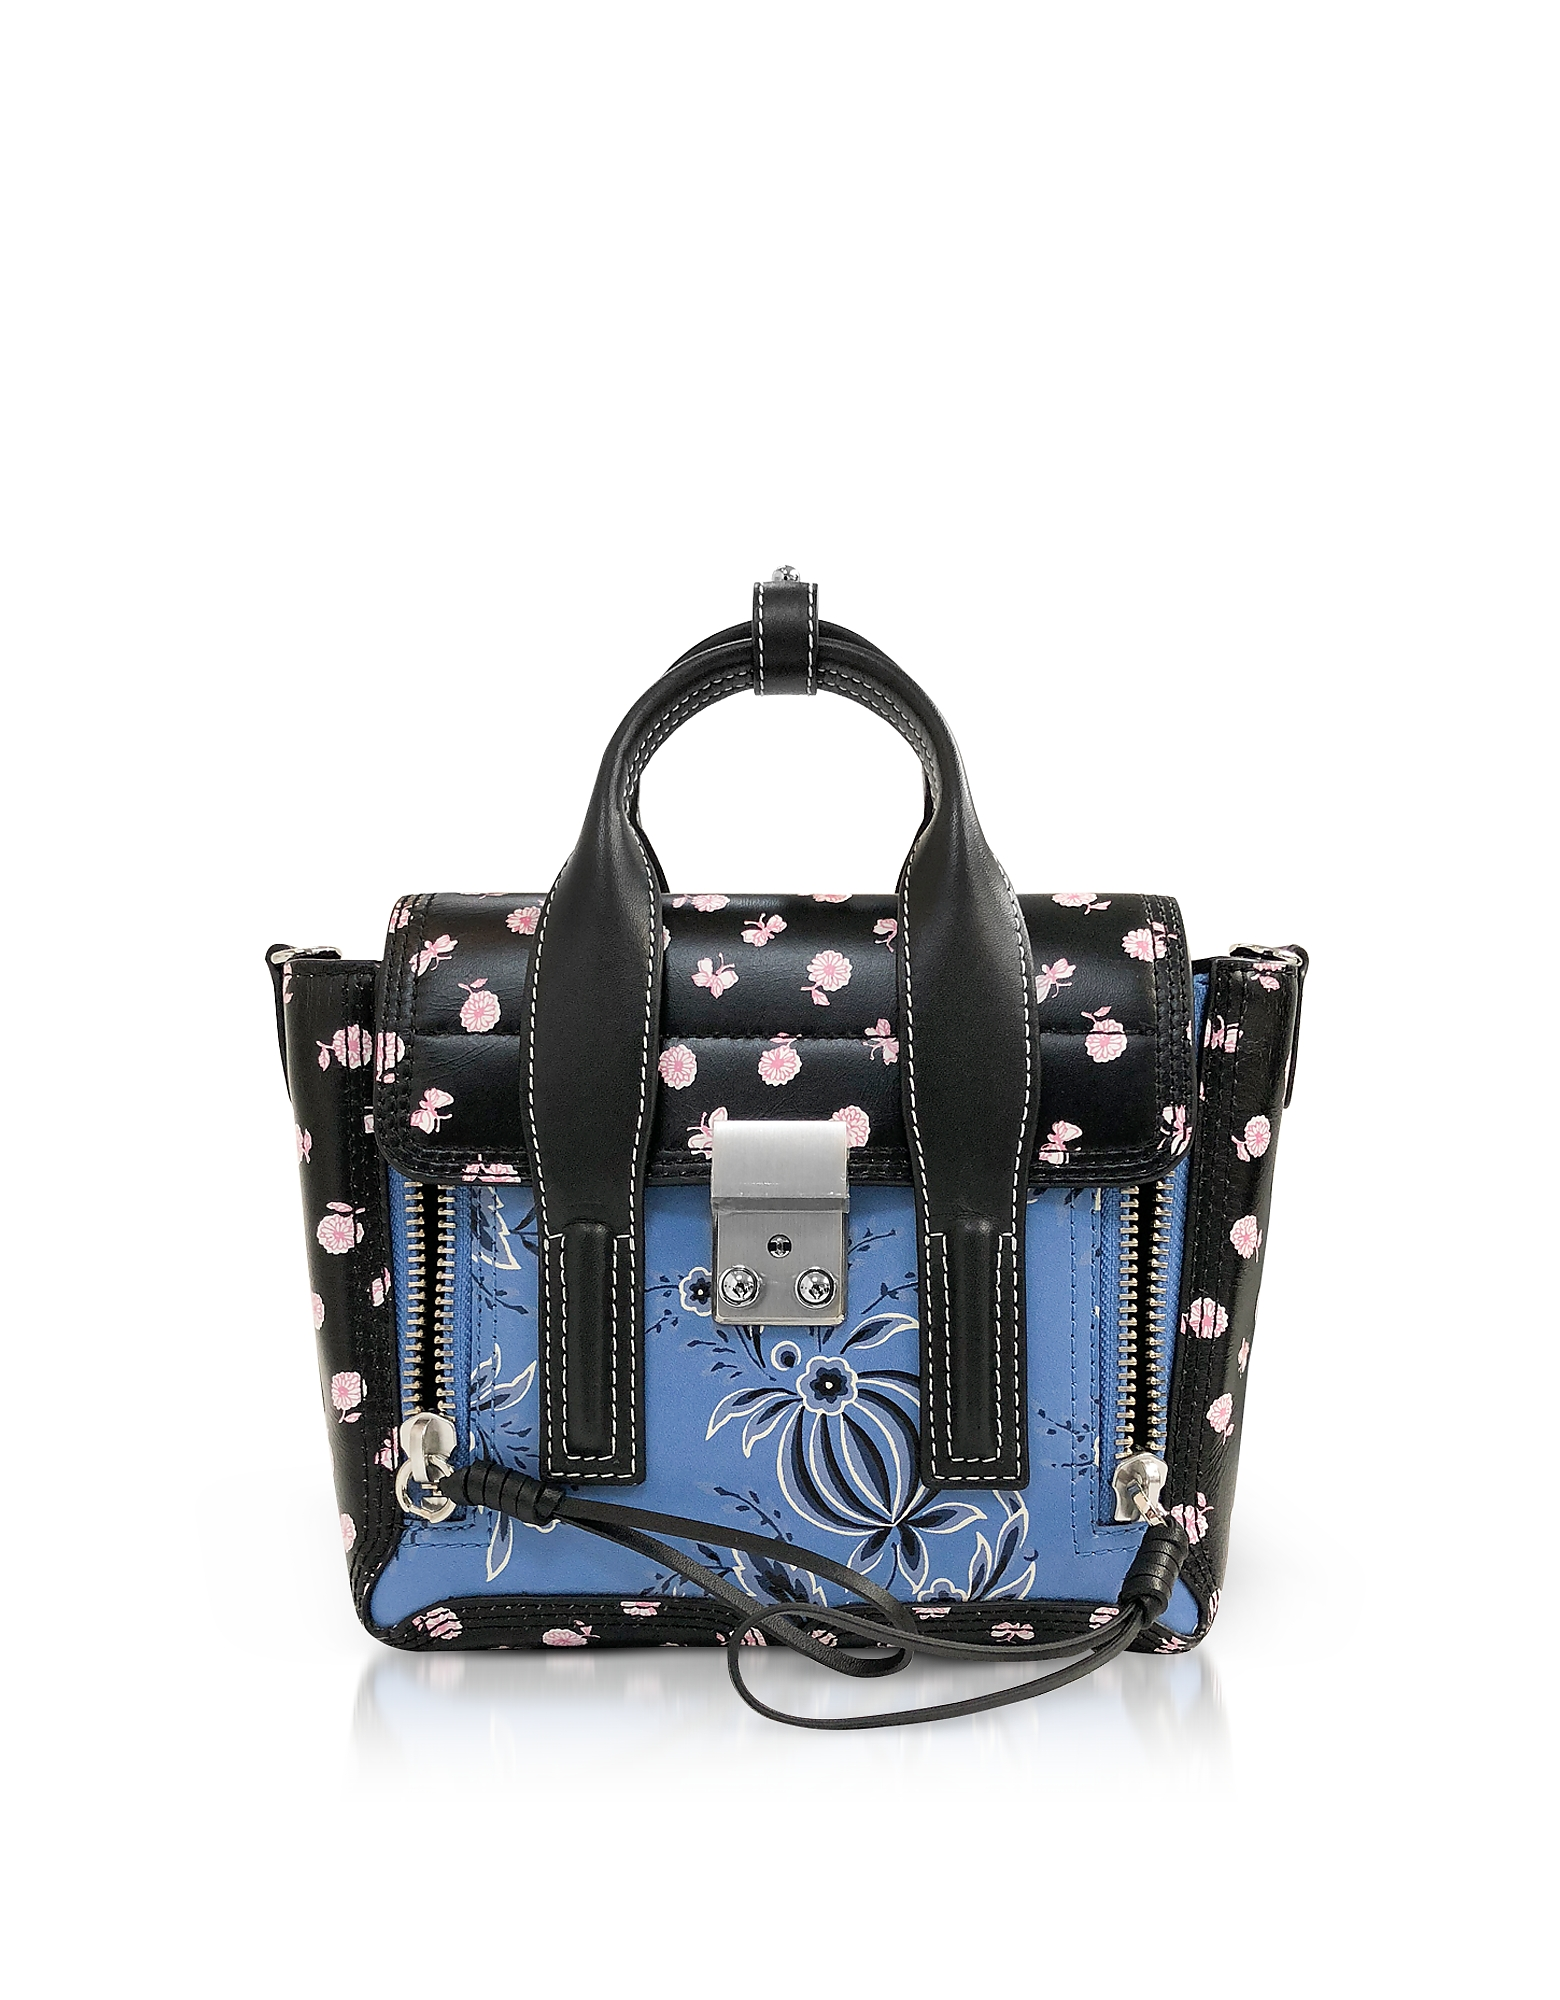 Image of 3.1 Phillip Lim Designer Handbags, Black Multi Printed Leather Pashli Mini Satchel